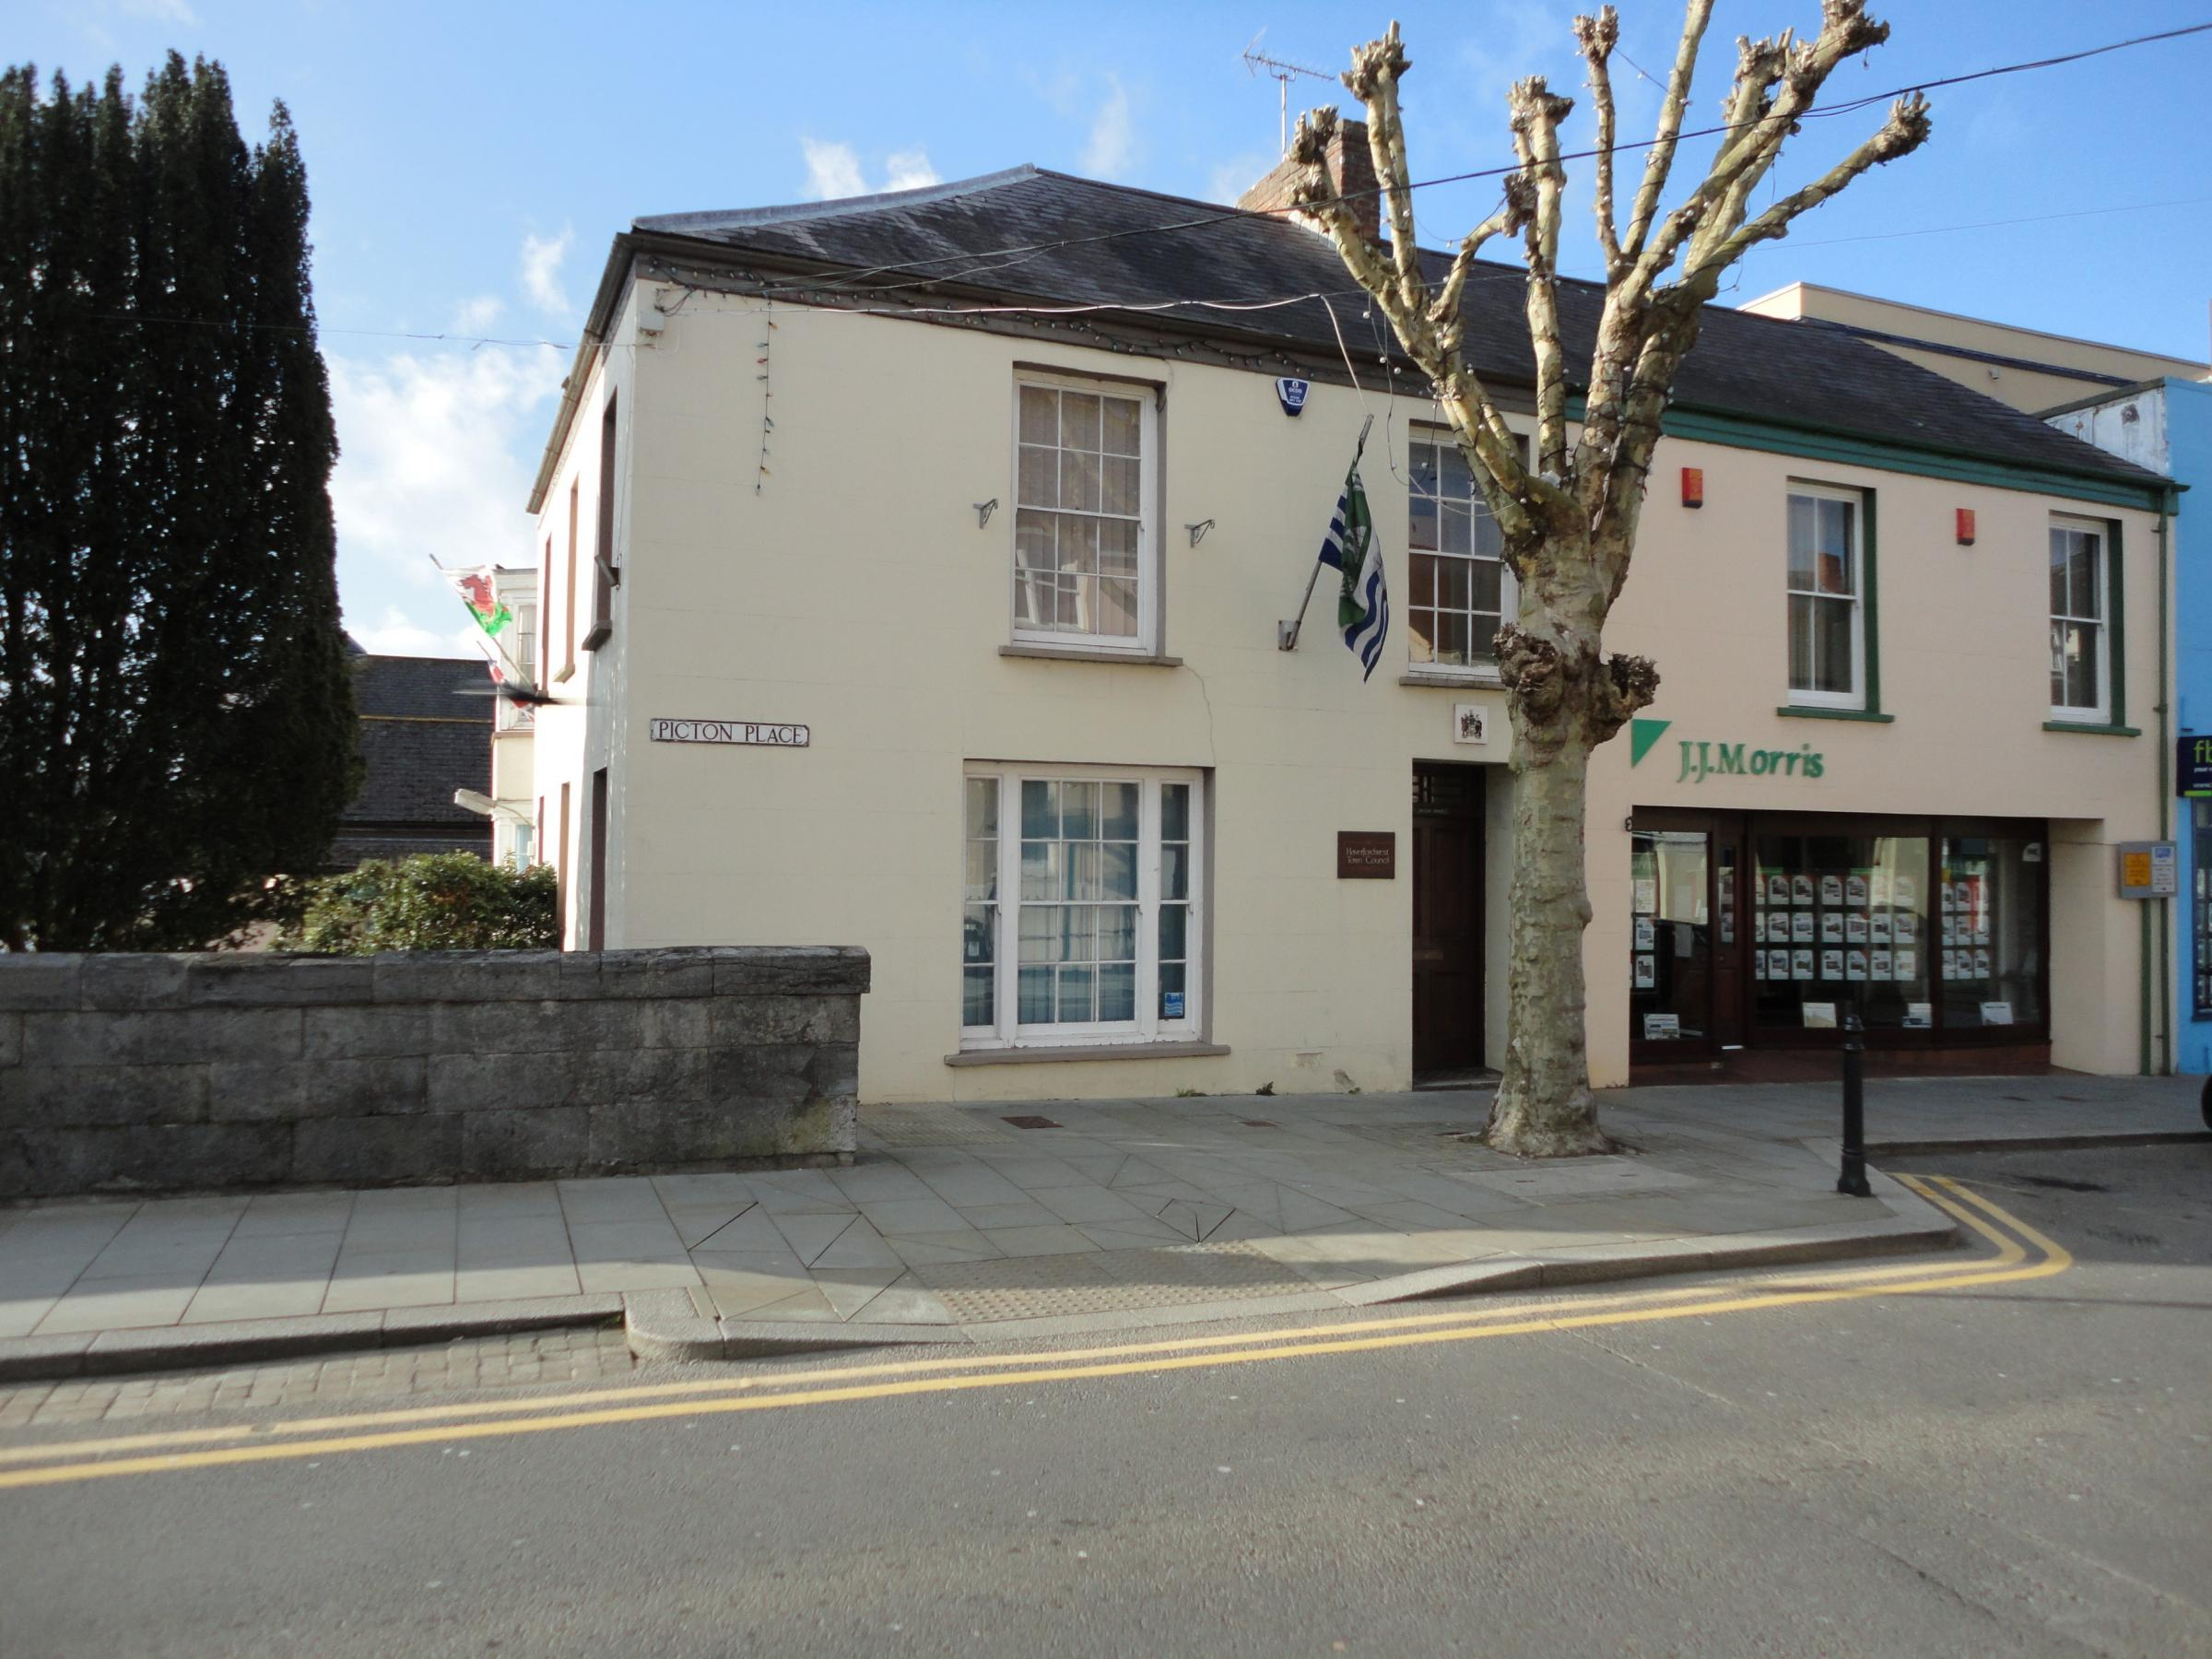 Picton House, offices of Haverfordwest Town Council.